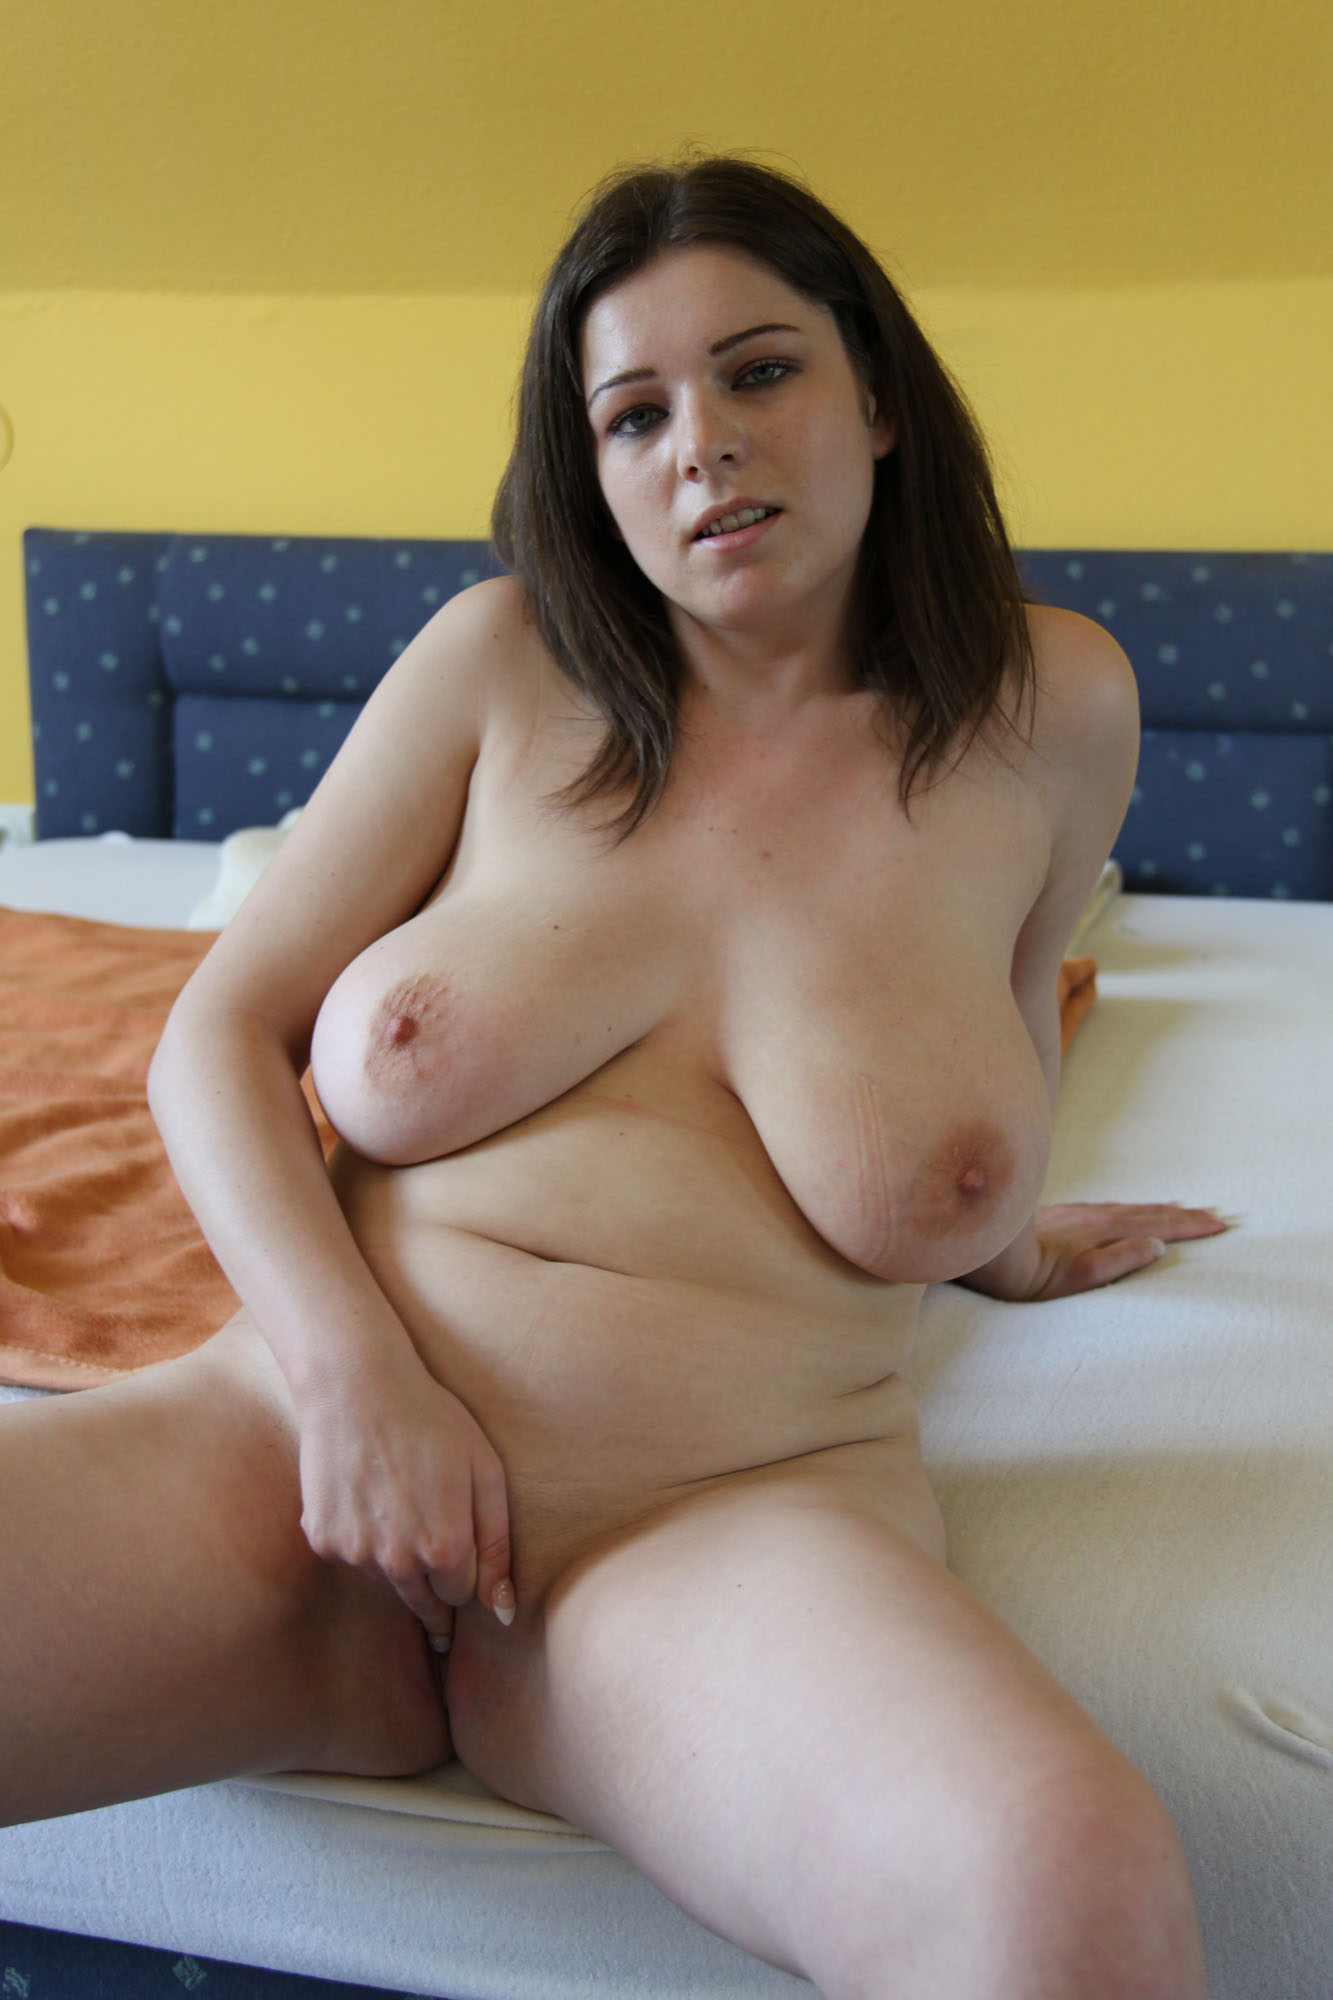 Fucking chubby german girls - Porno photo